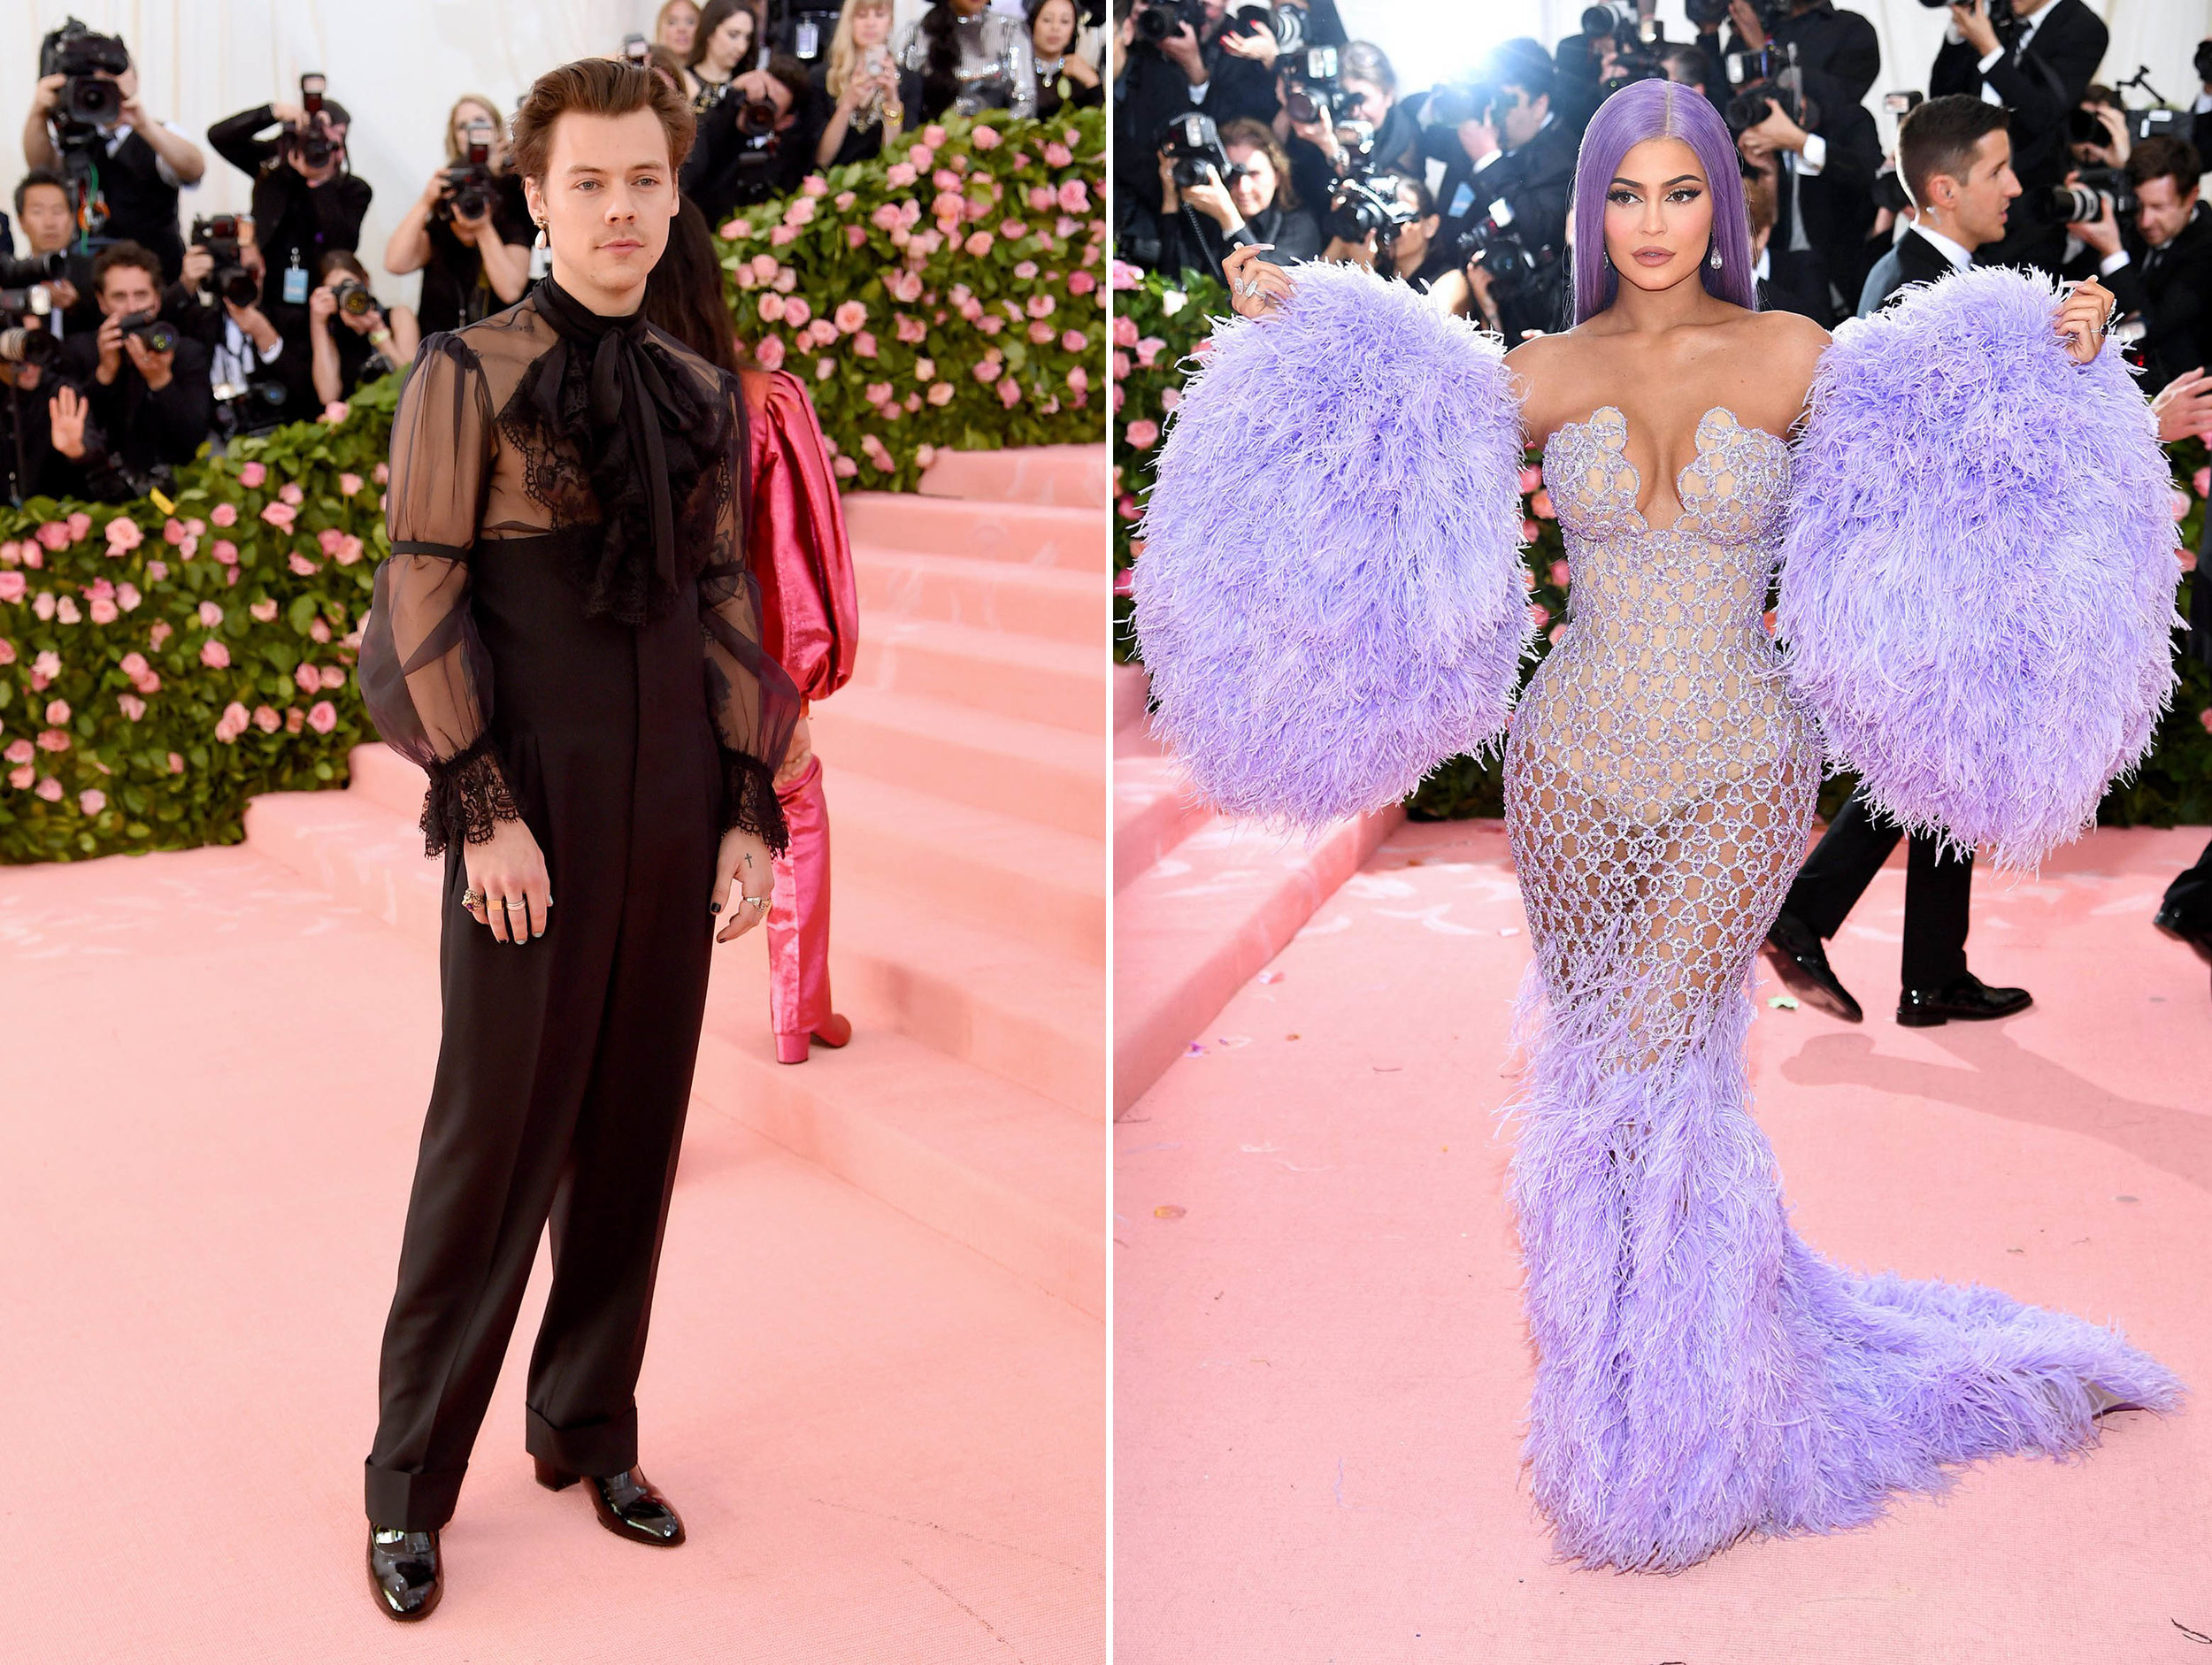 Left: Harry Styles, Right: Kylie Jenner